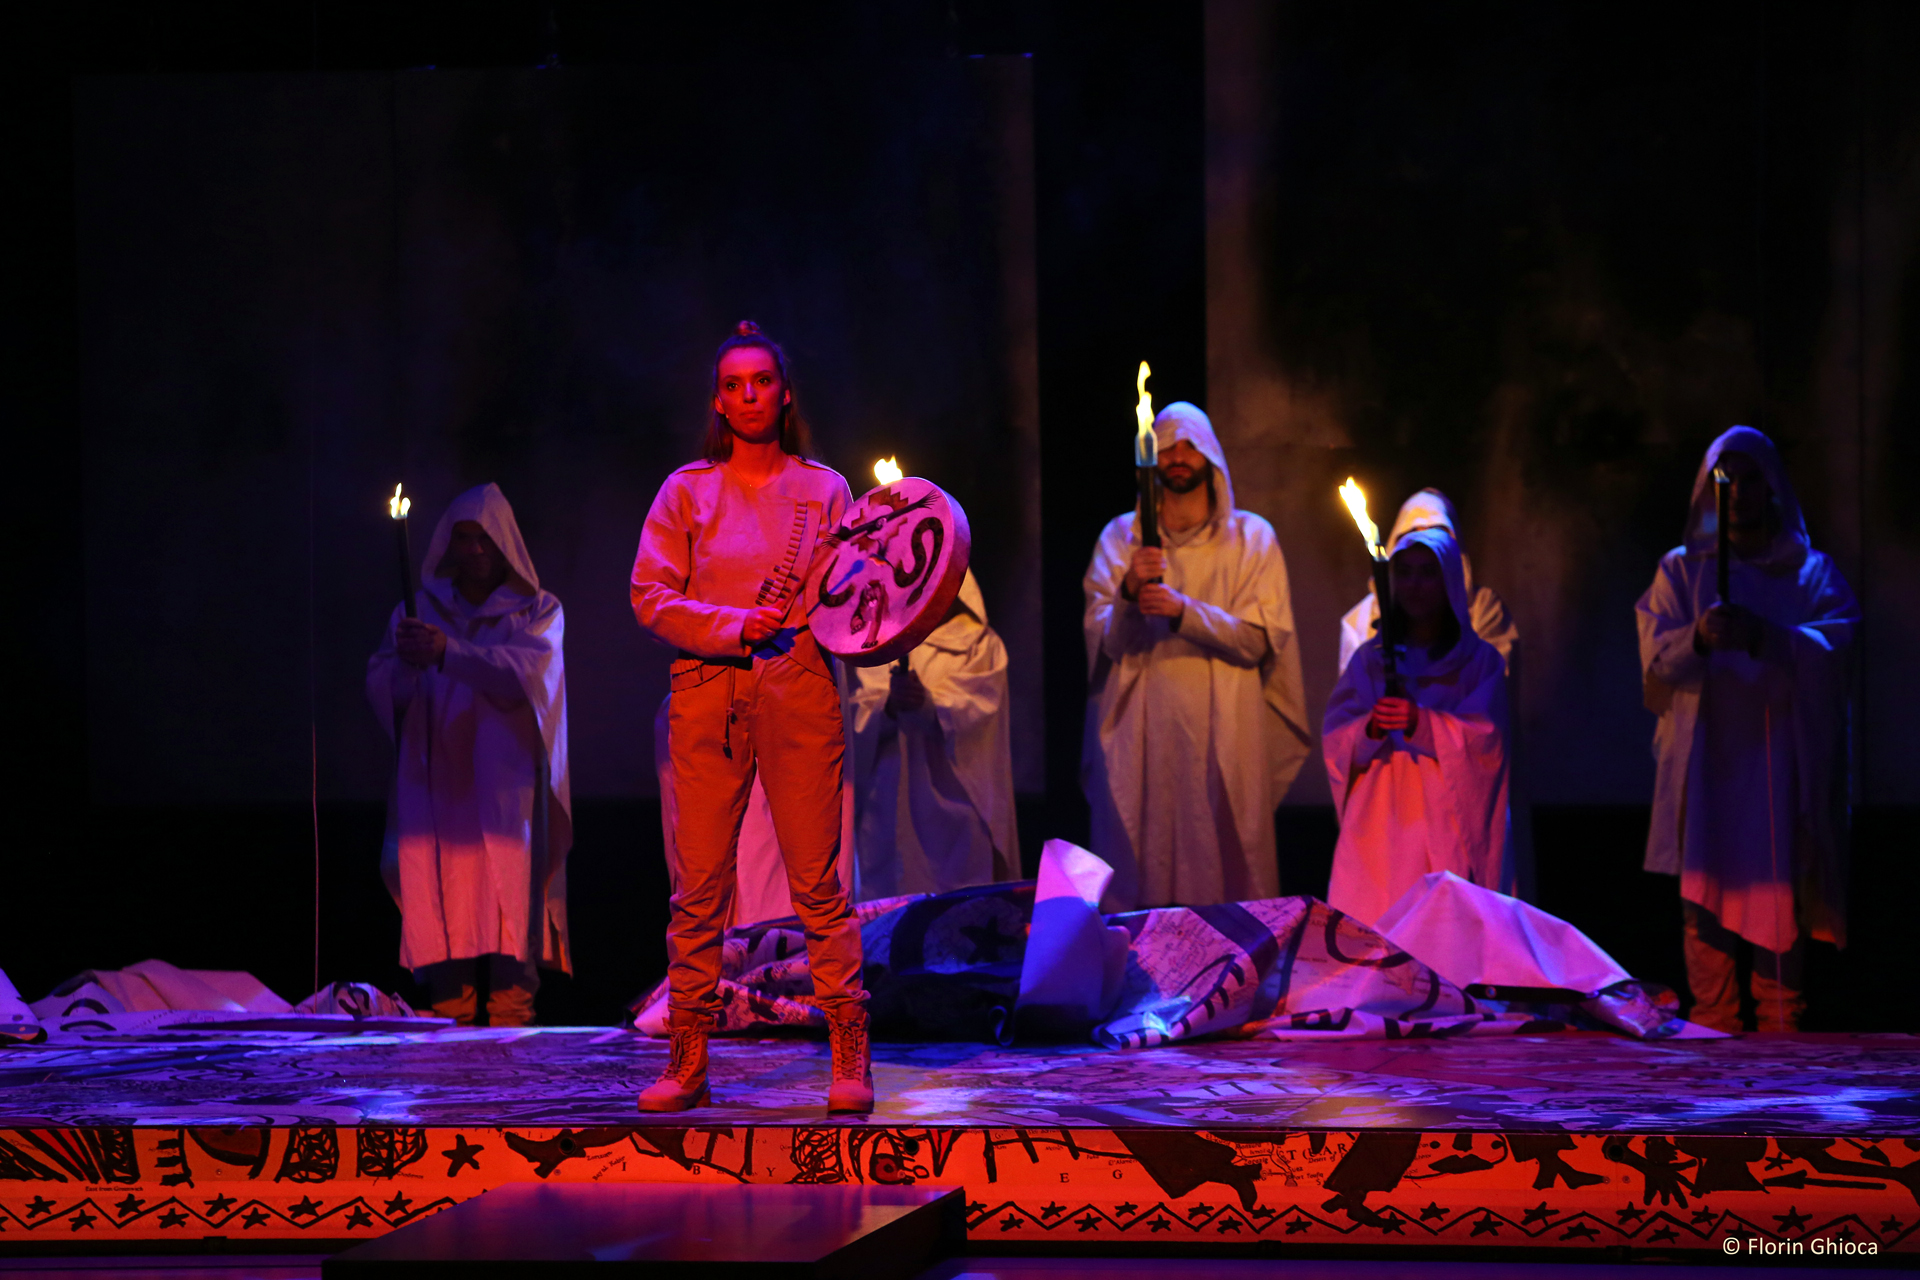 performers onstage in hoods holding torches, one person standing and holding a drum